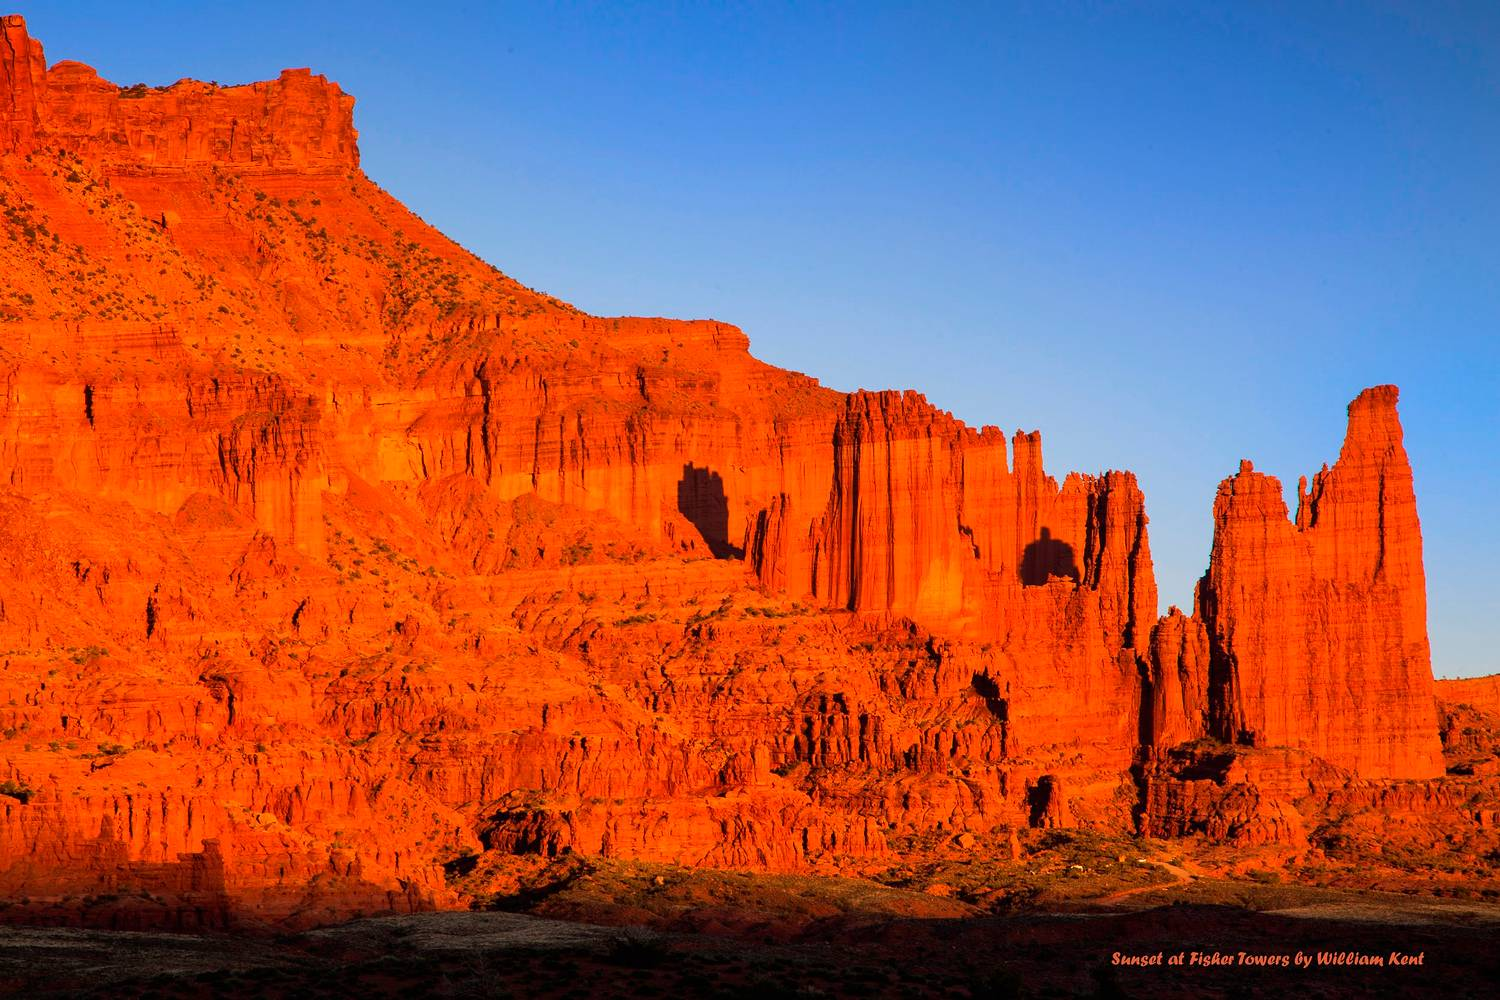 Sunset at Fisher Towers by William Kent